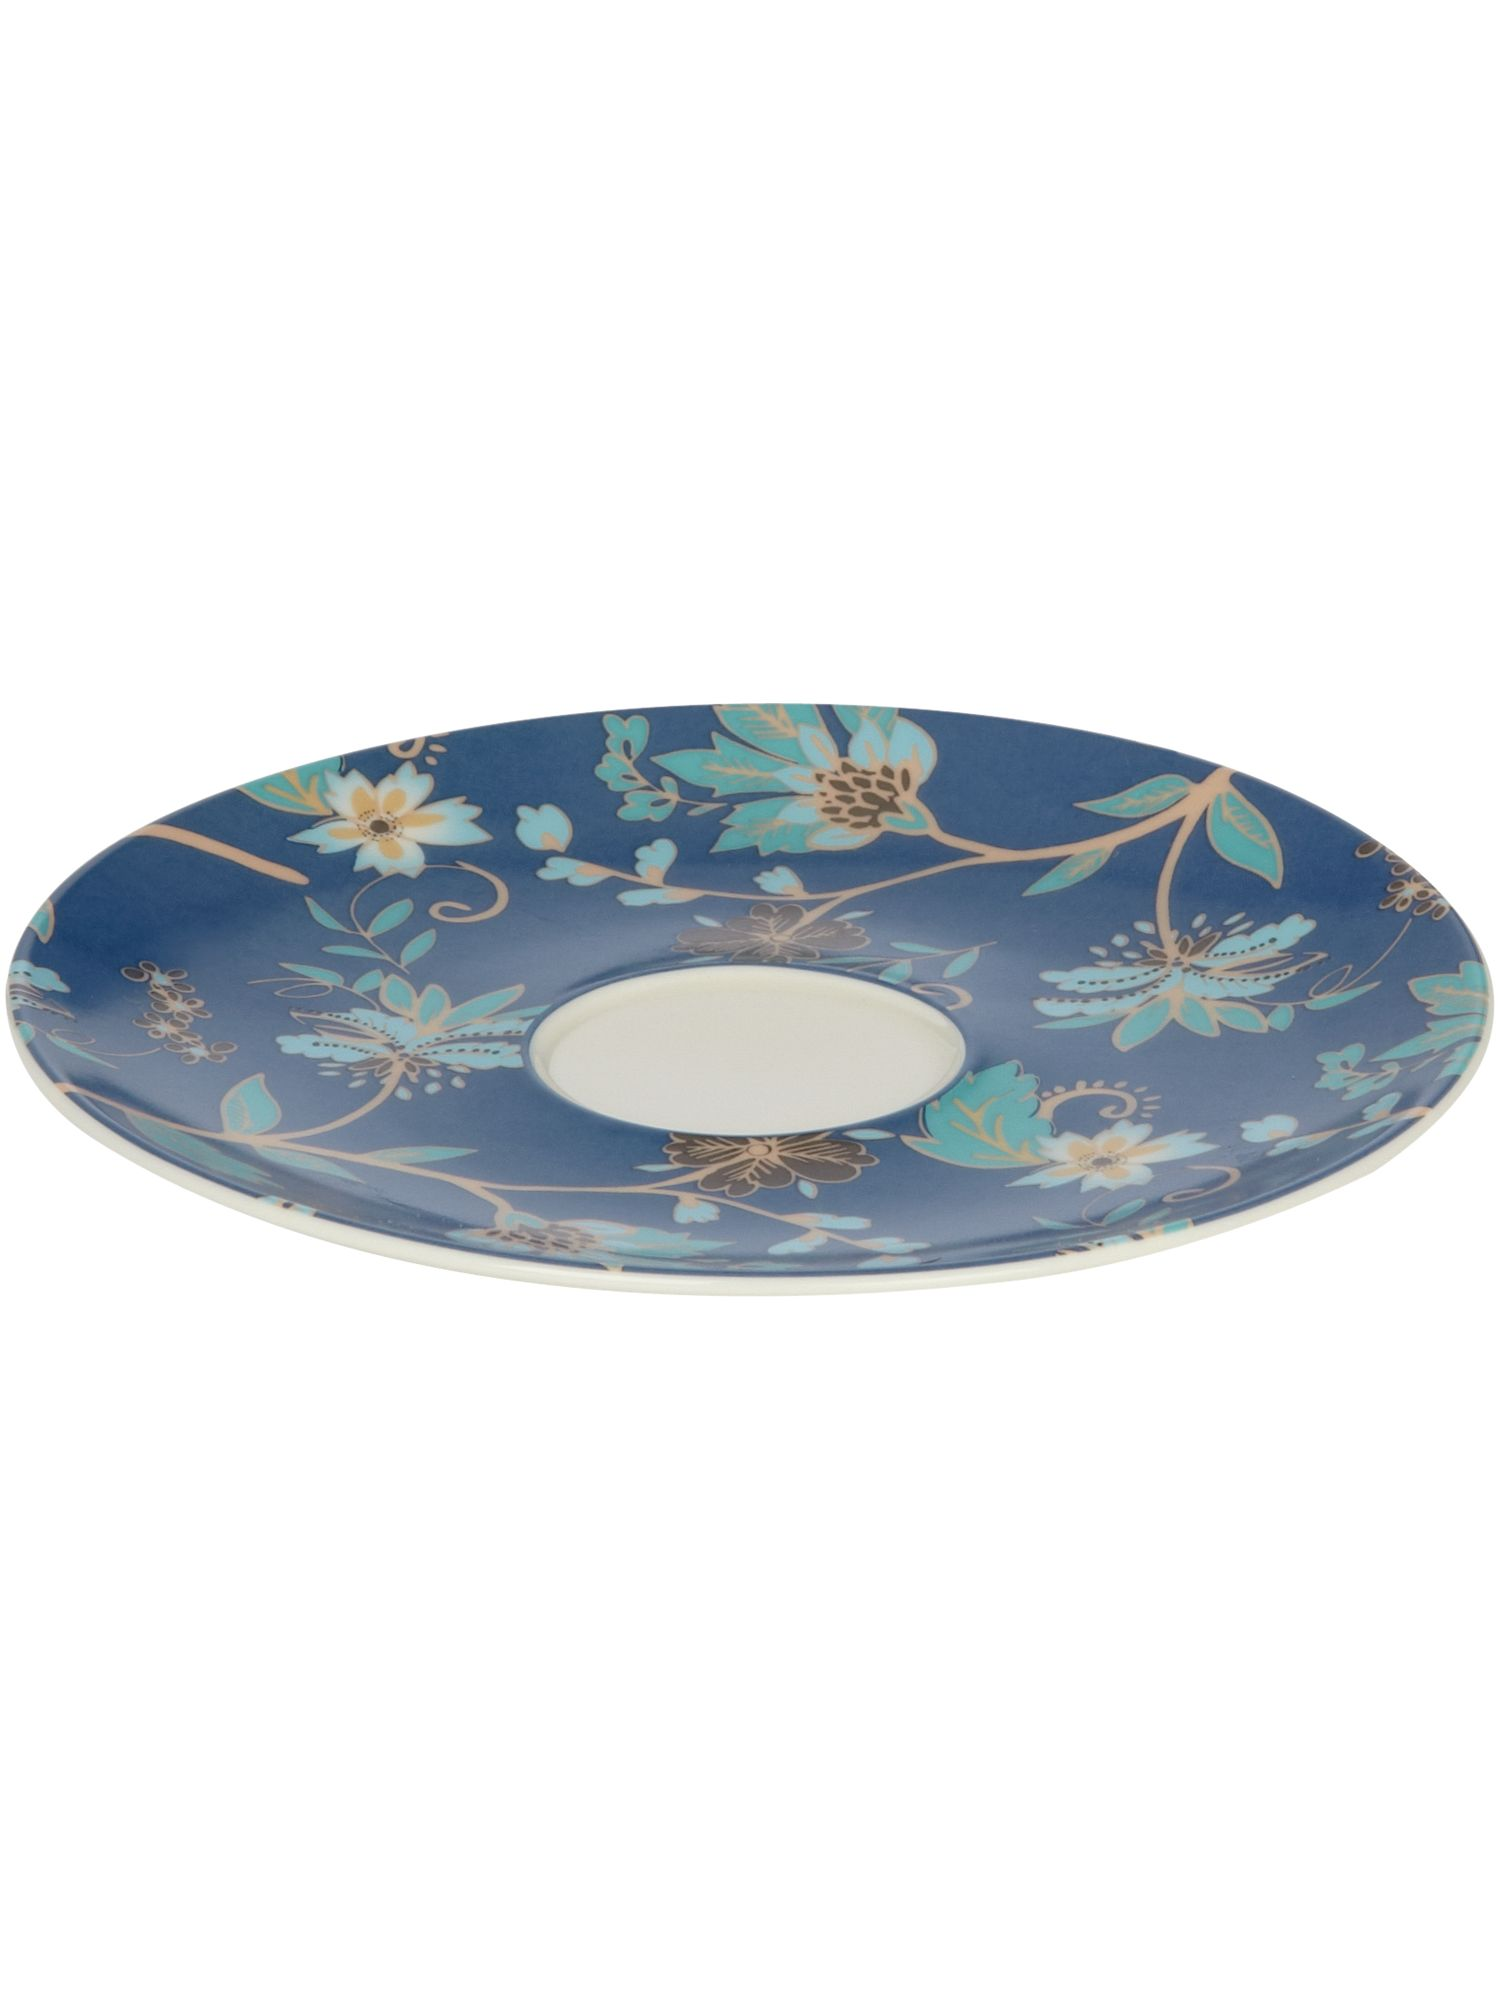 Monsoon Veronica Tea Saucer